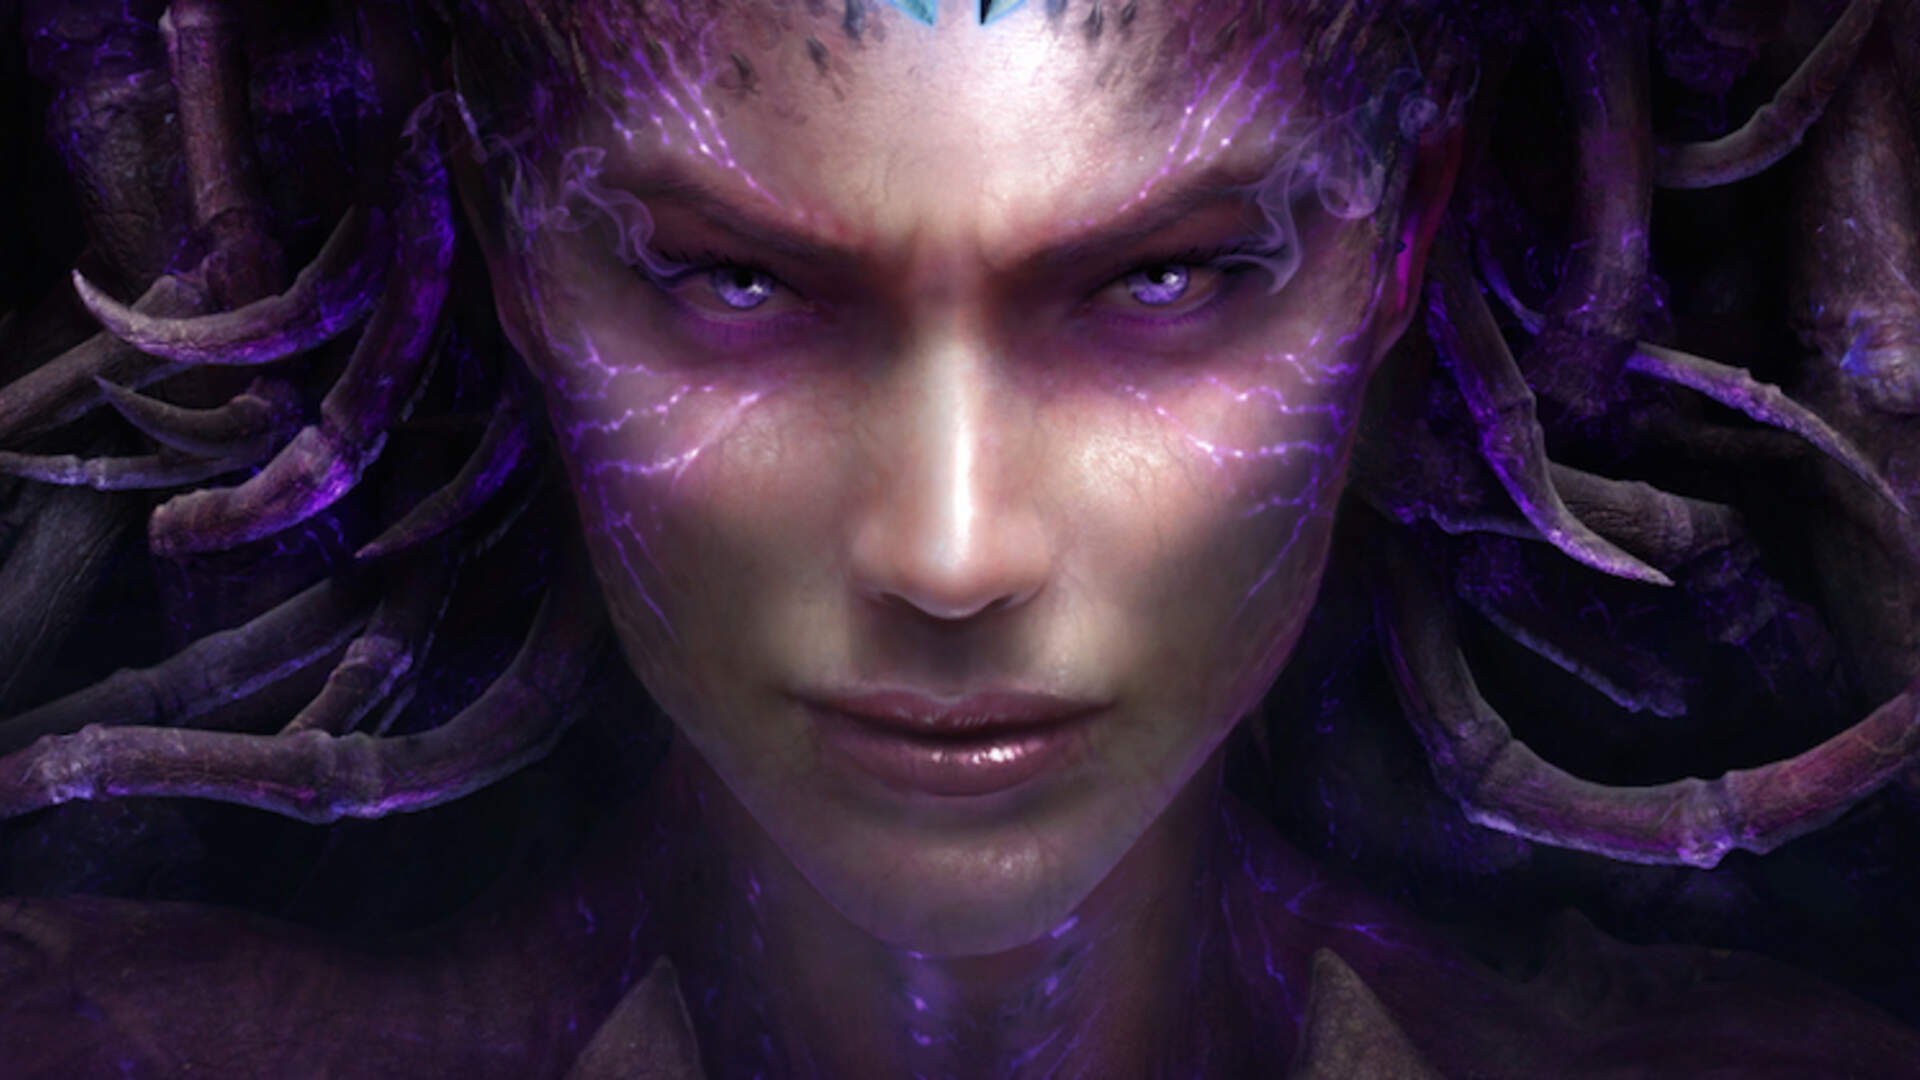 Swedish Politicians Settling Their Differences with StarCraft